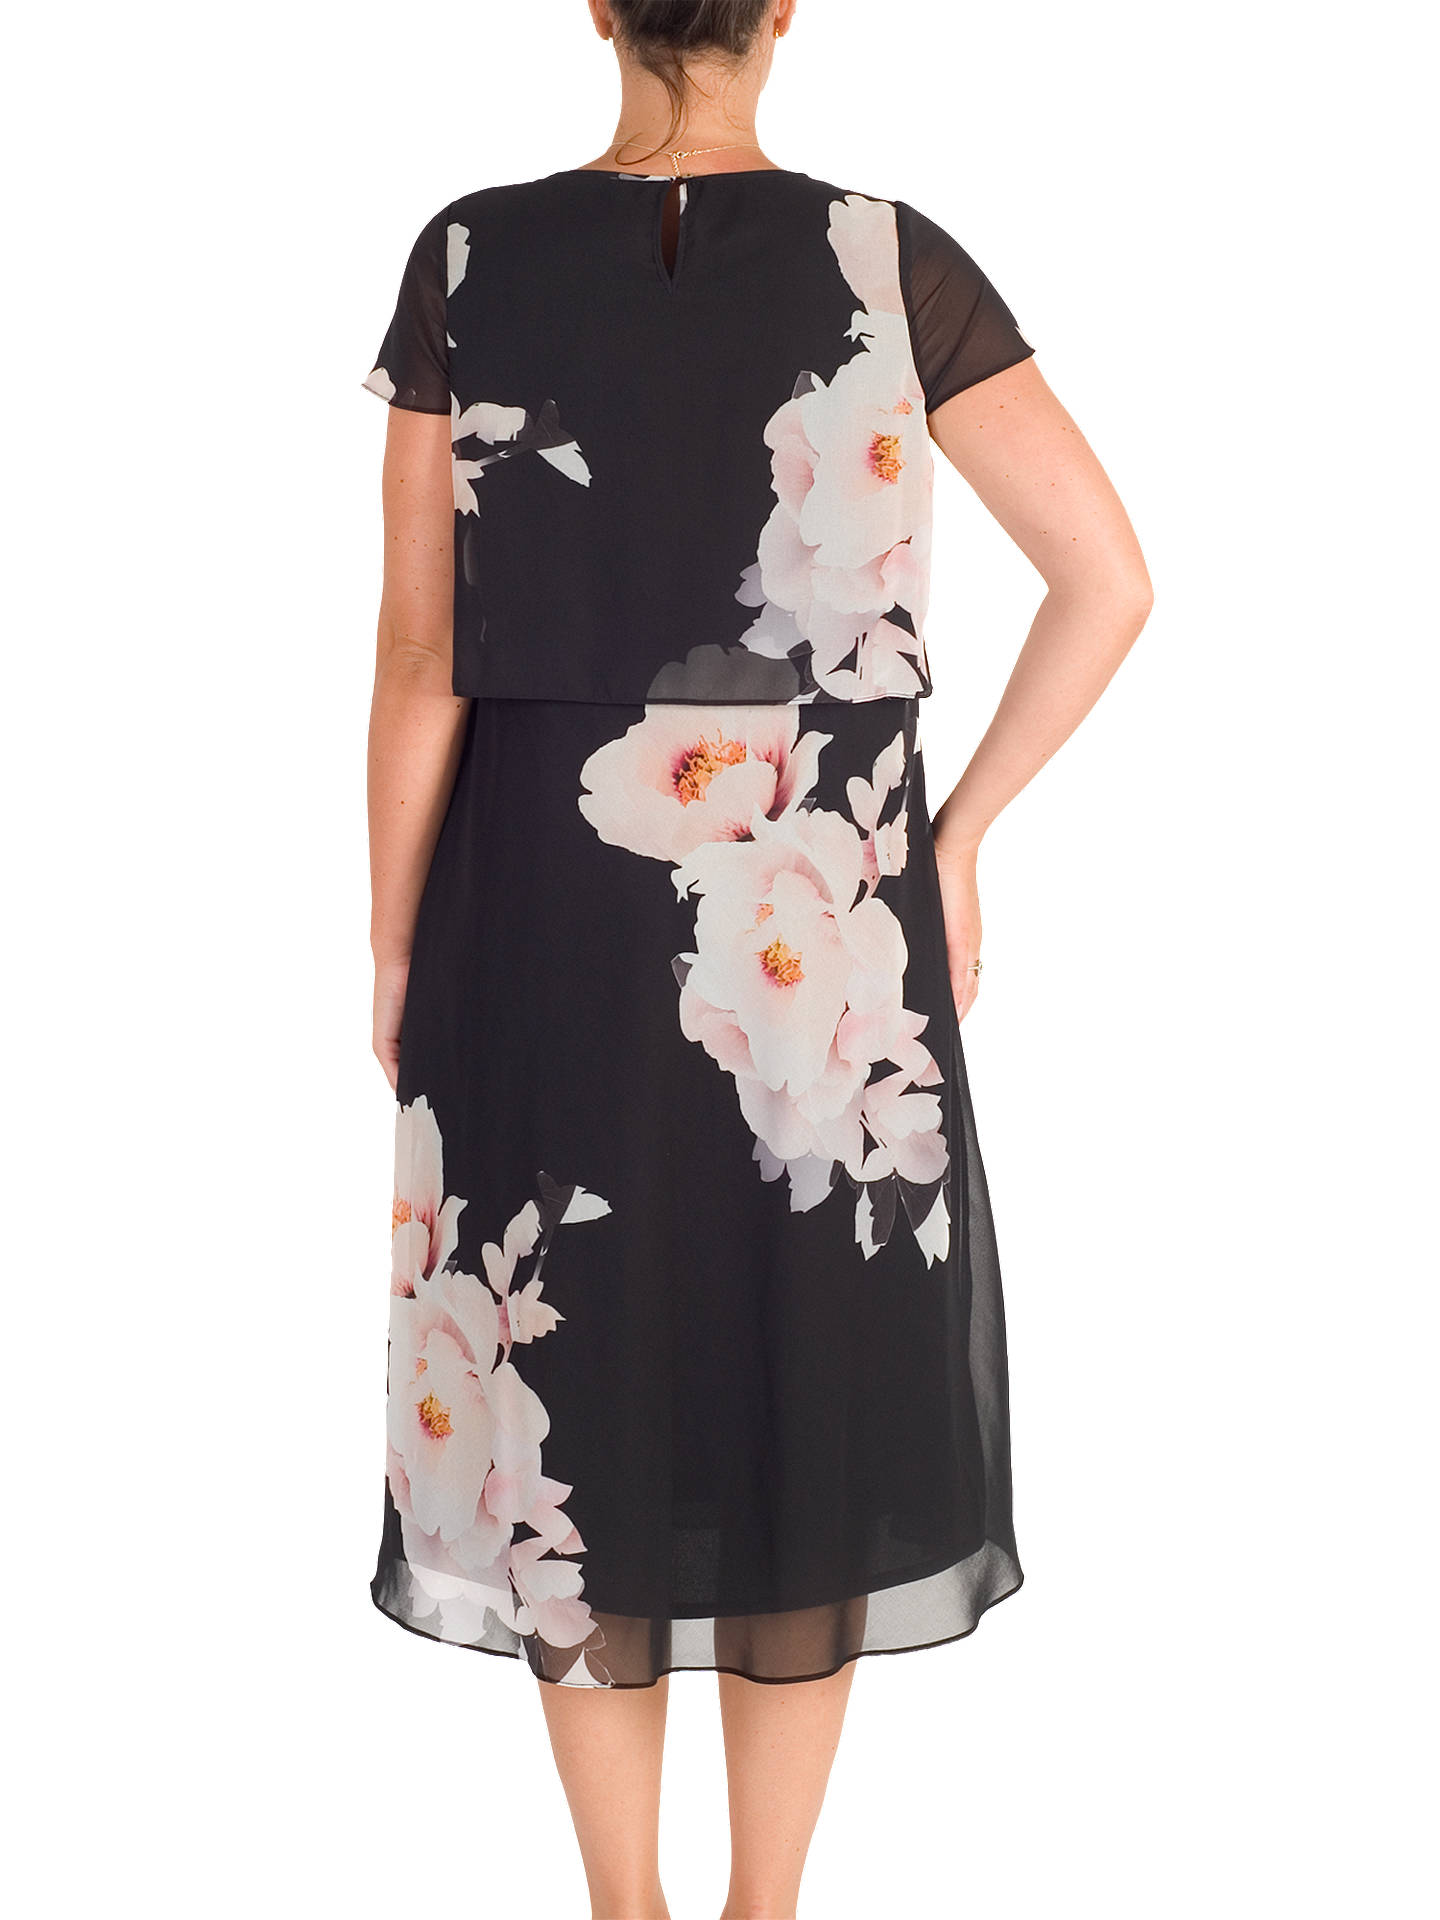 BuyChesca Floral Print Layered Chiffon Dress, Black/Blush, 12 Online at johnlewis.com